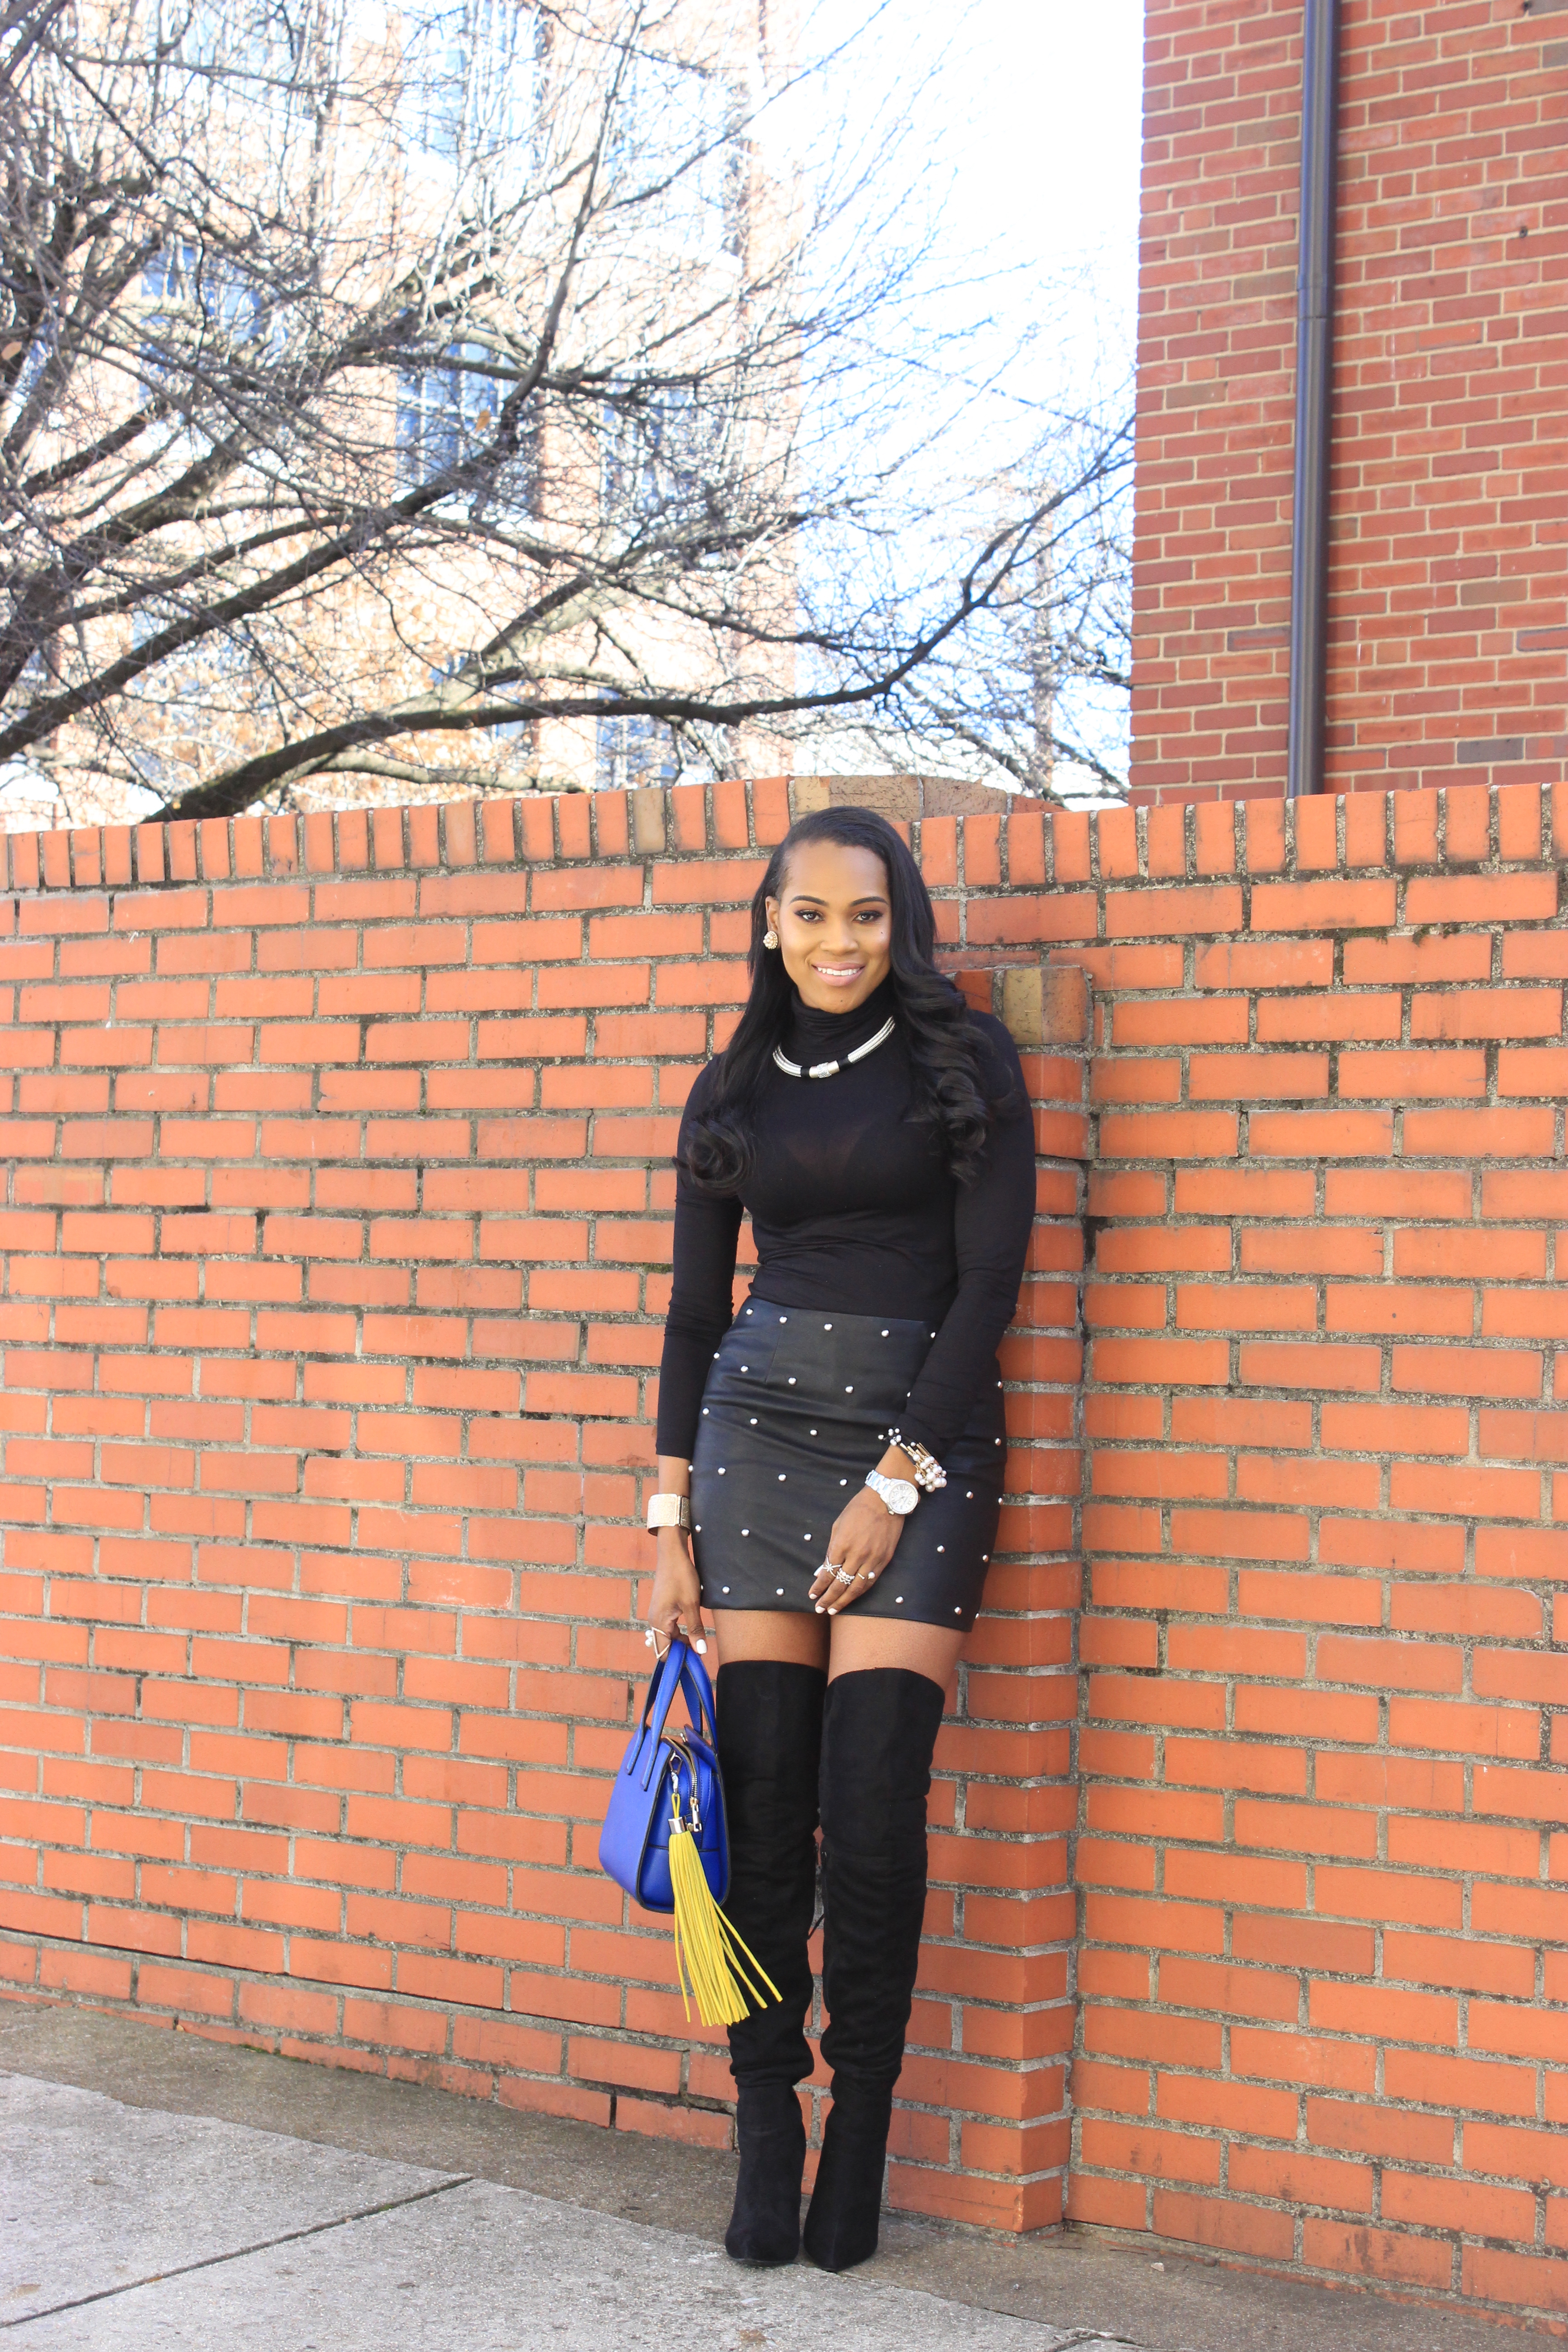 Style-Files-SheIn-Multicolor-Lapel-Color-Block-Coat-Forever21-Faux-Leather-studded-mini-skirt-black-sheer-turtleneck-Truffle-Collection-Over- The-Knee-Lace-Up-Back-High-Heeled-Boots-Hot-Pink-Beanie-Winter-Coat-Style-Guide-Oohlalablog-10